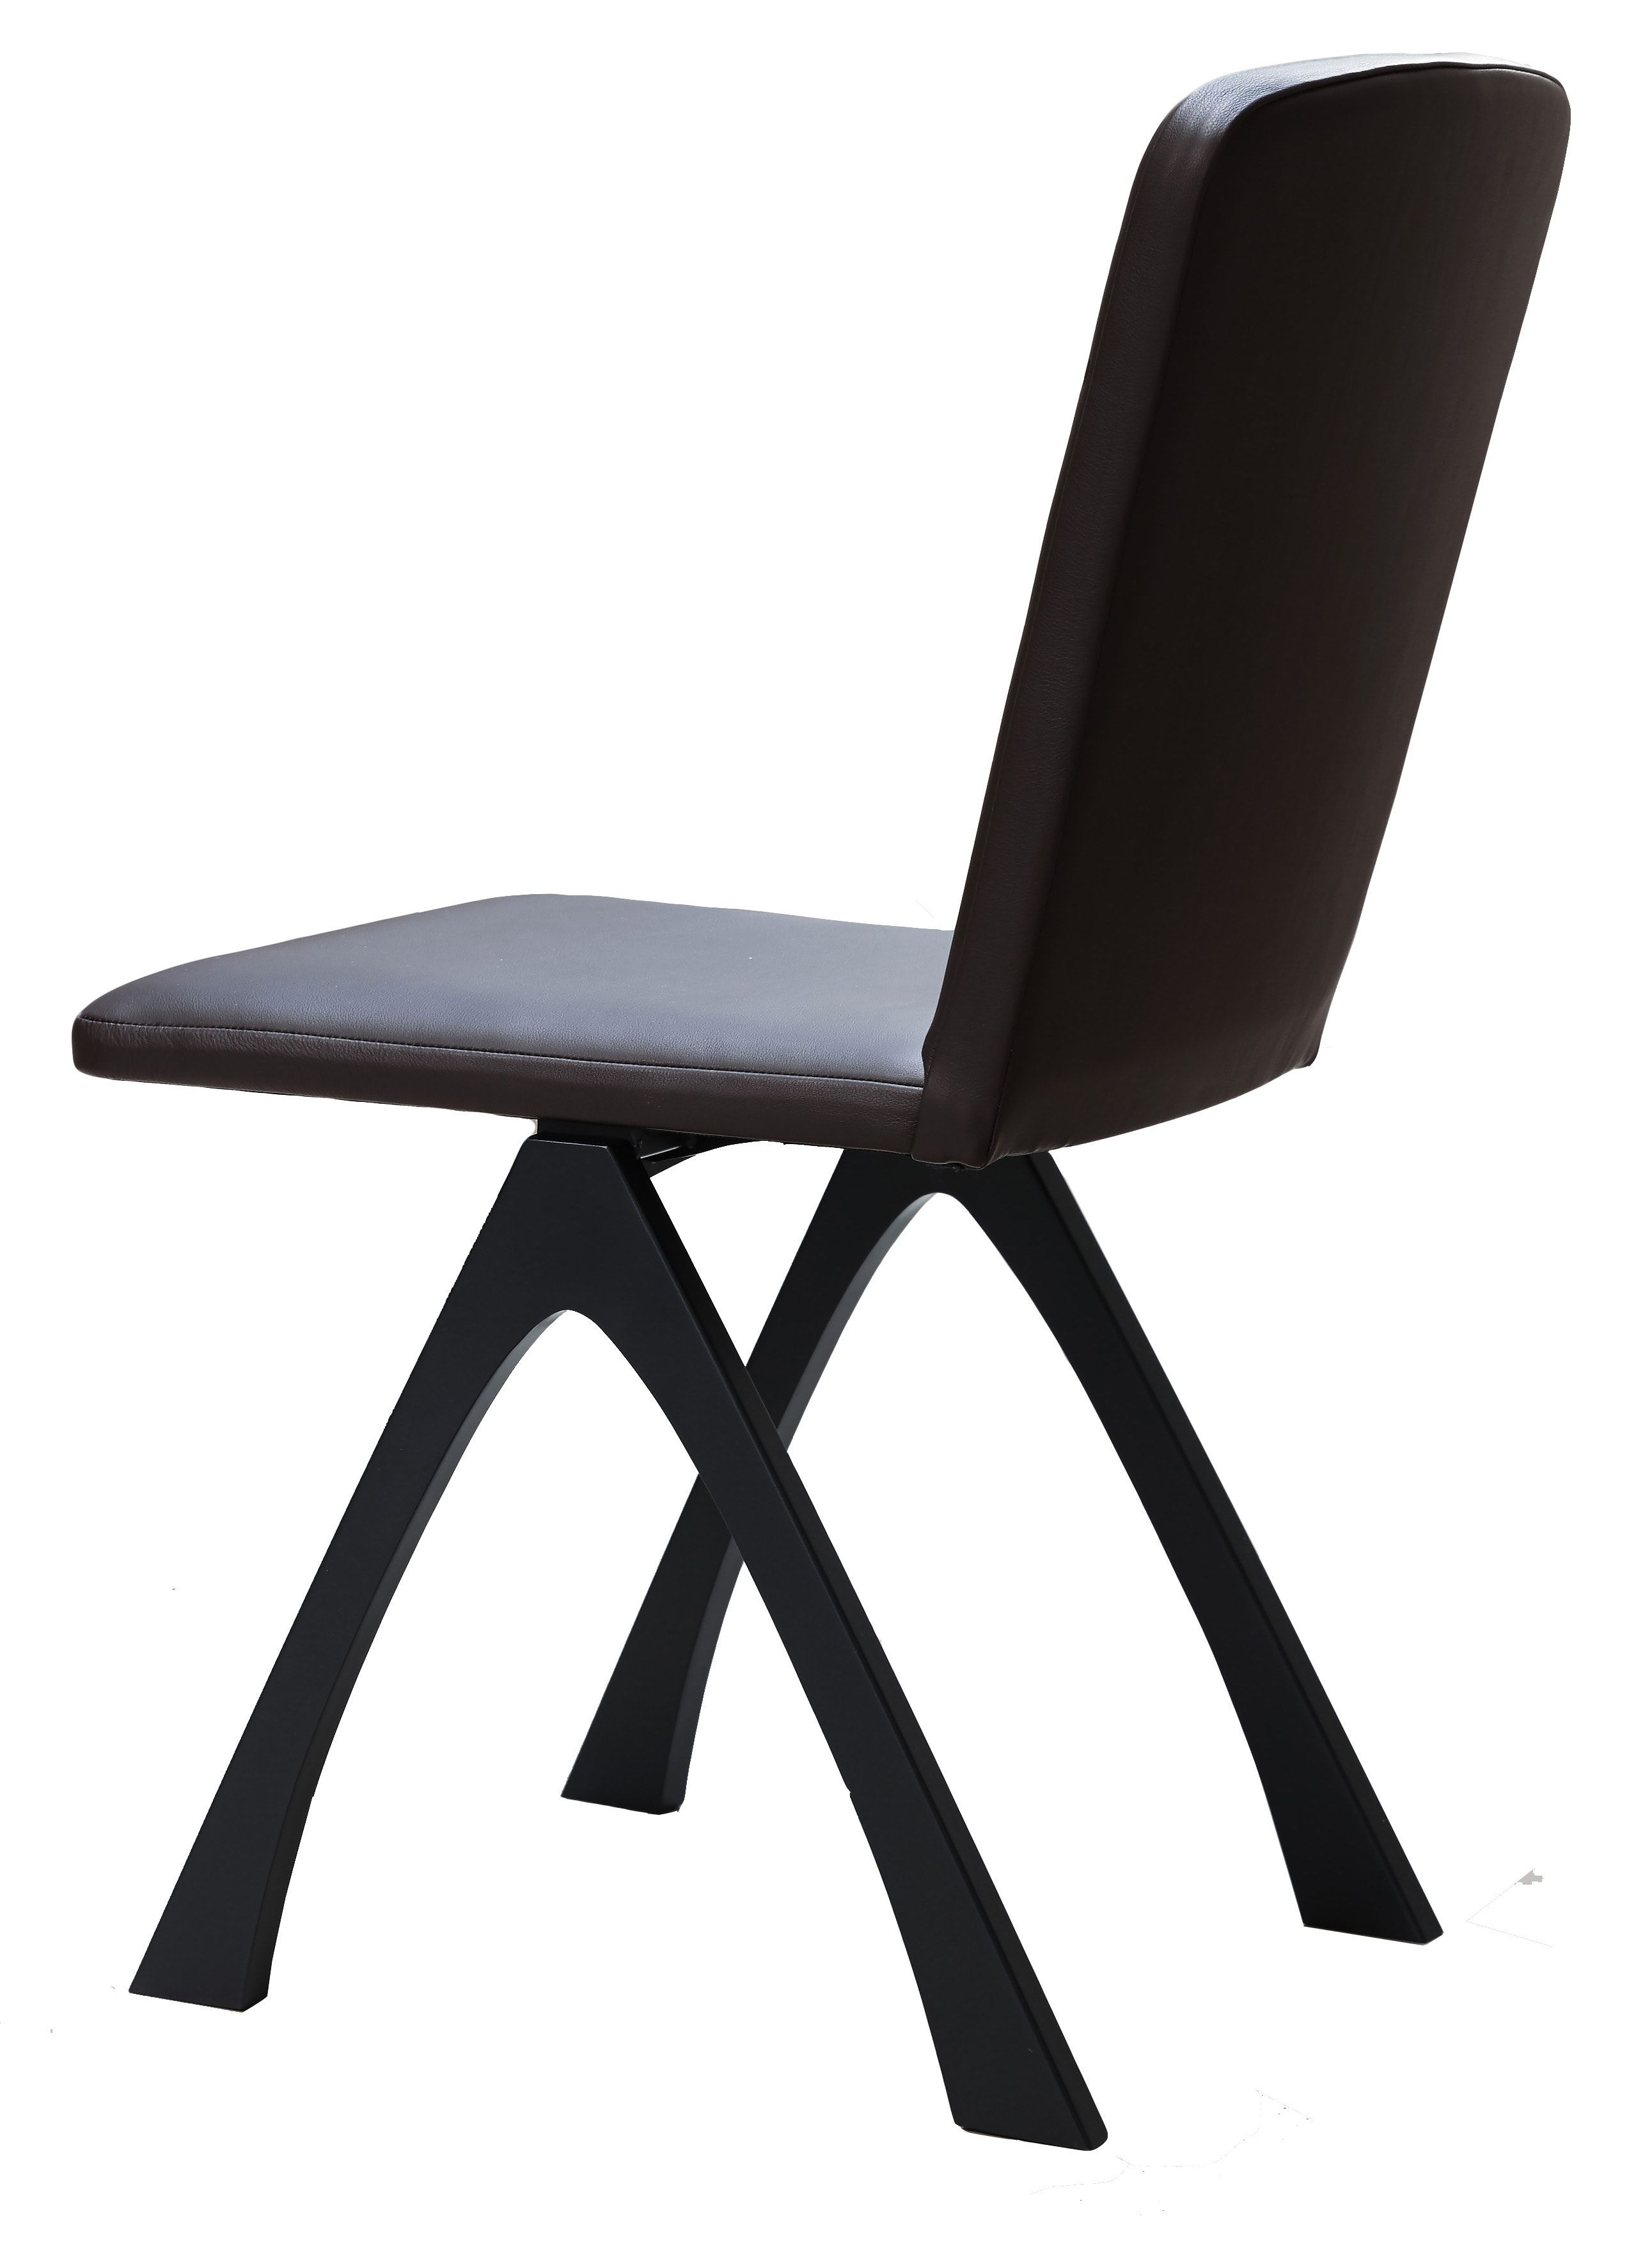 Buy Exe Dining Chair By Tom Faulkner   Made To Order Designer Furniture From